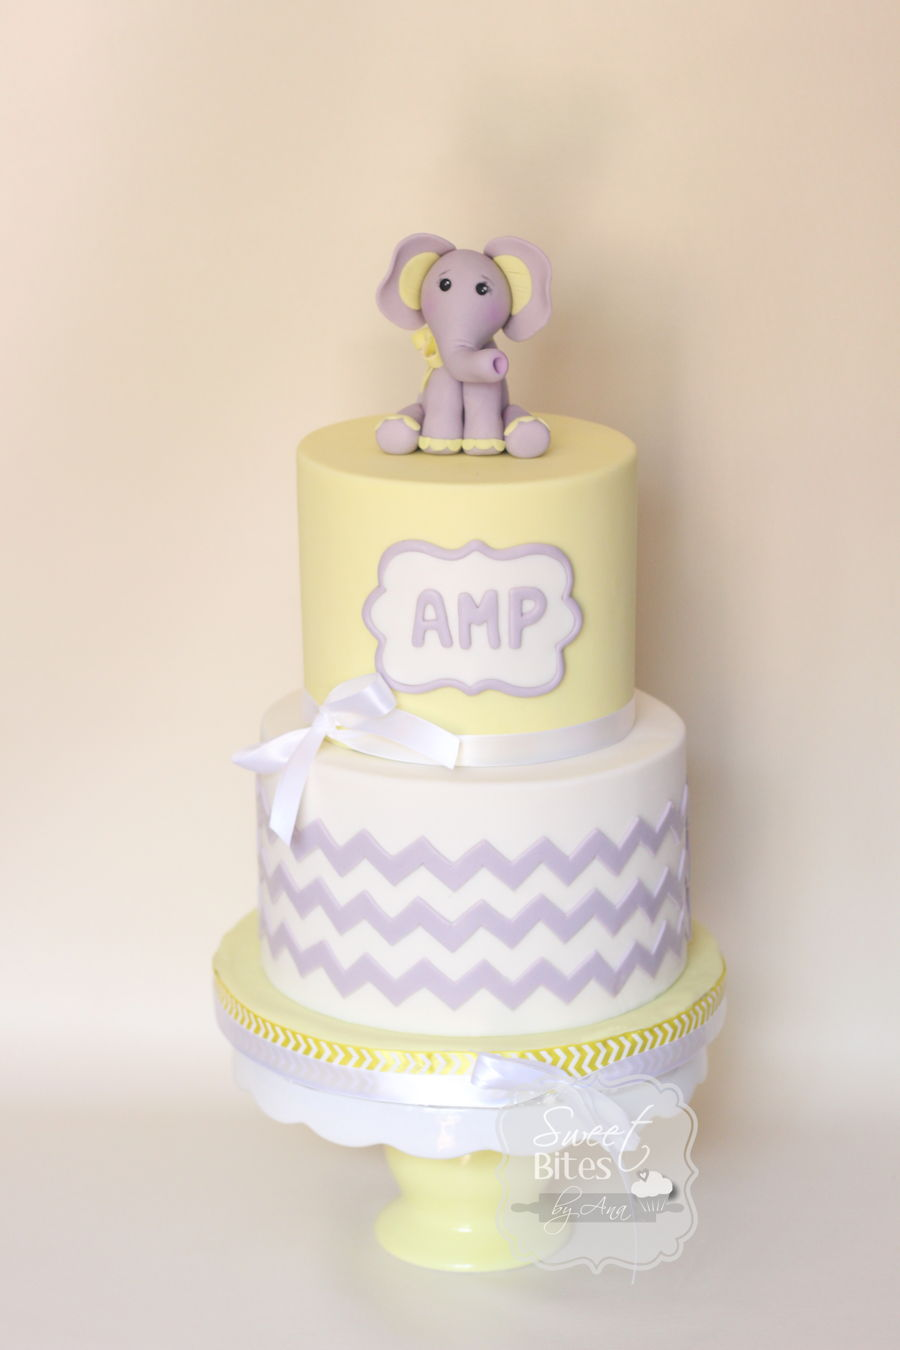 Unisex Baby Shower Cake Images : Baby Elephant Gender Neutral Baby Shower Cake ...